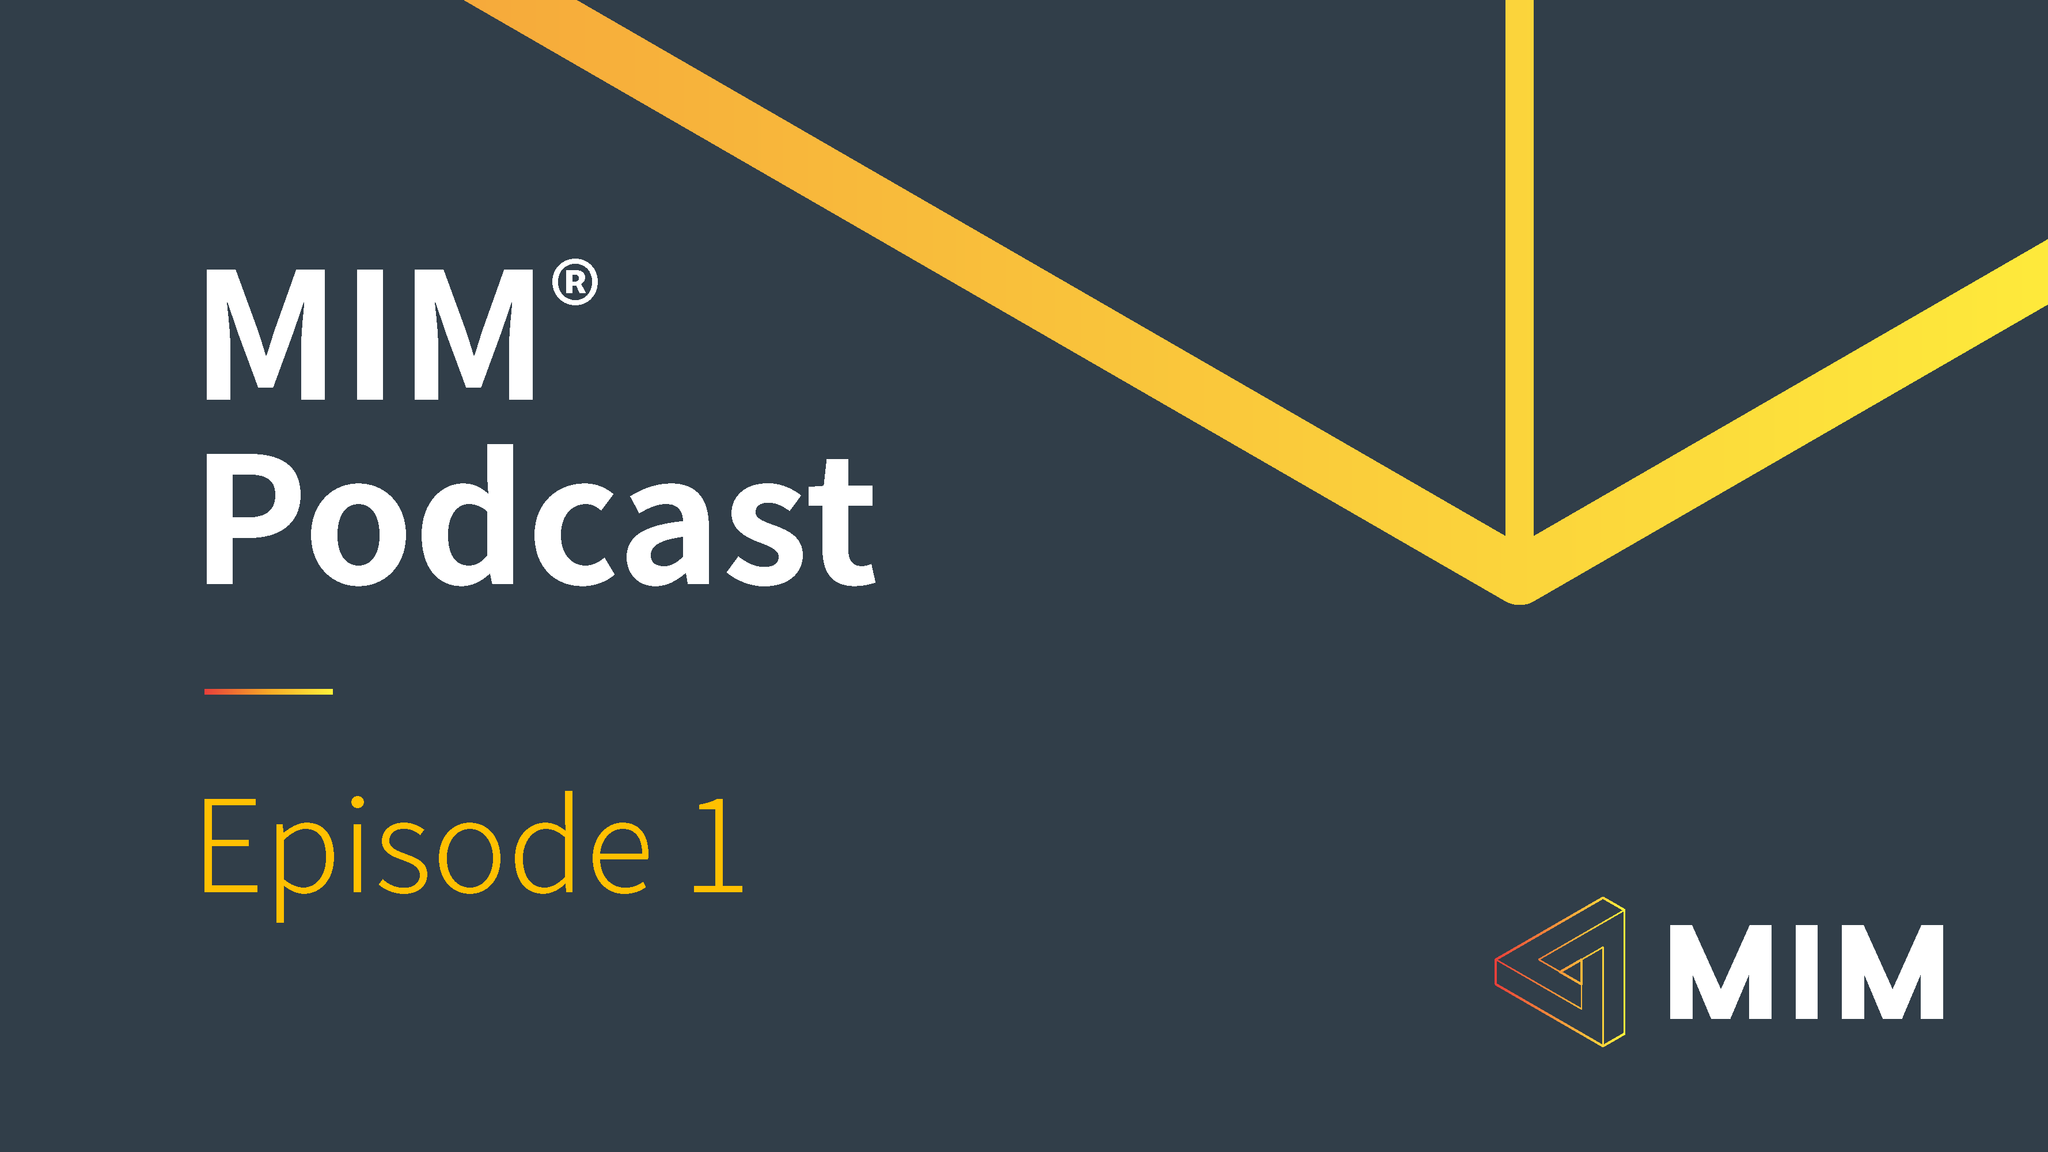 MIM Podcast: Episode 1 Nick Coates, Symantec